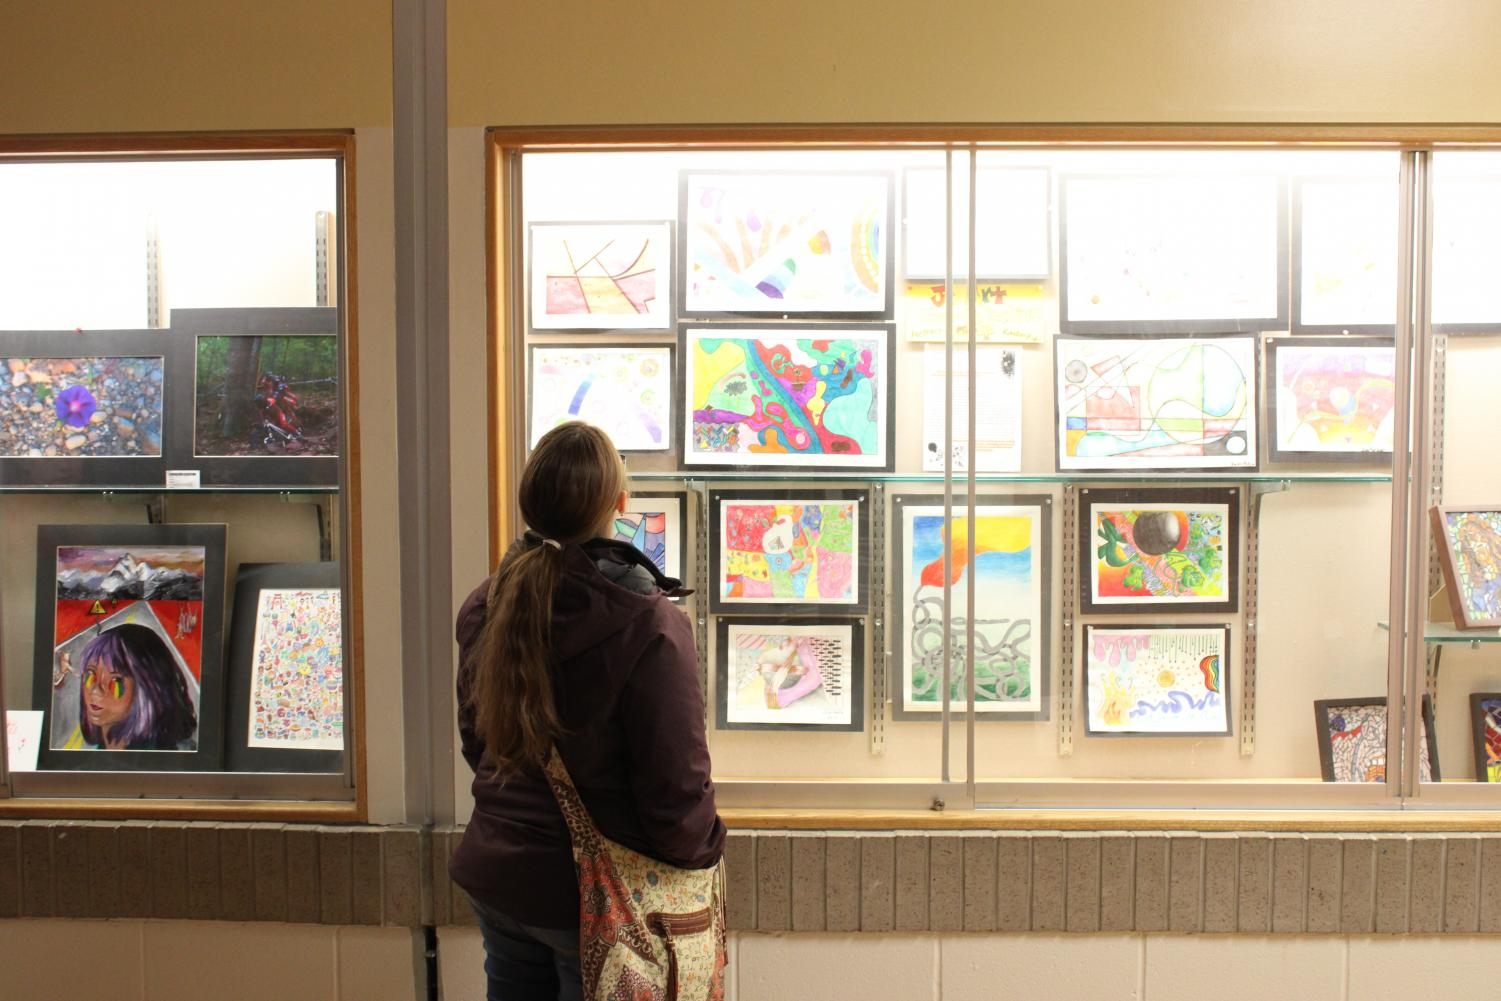 Compositions created by Effies and SENIORS alike were made available for the viewing pleasure of the art show's many attendees.